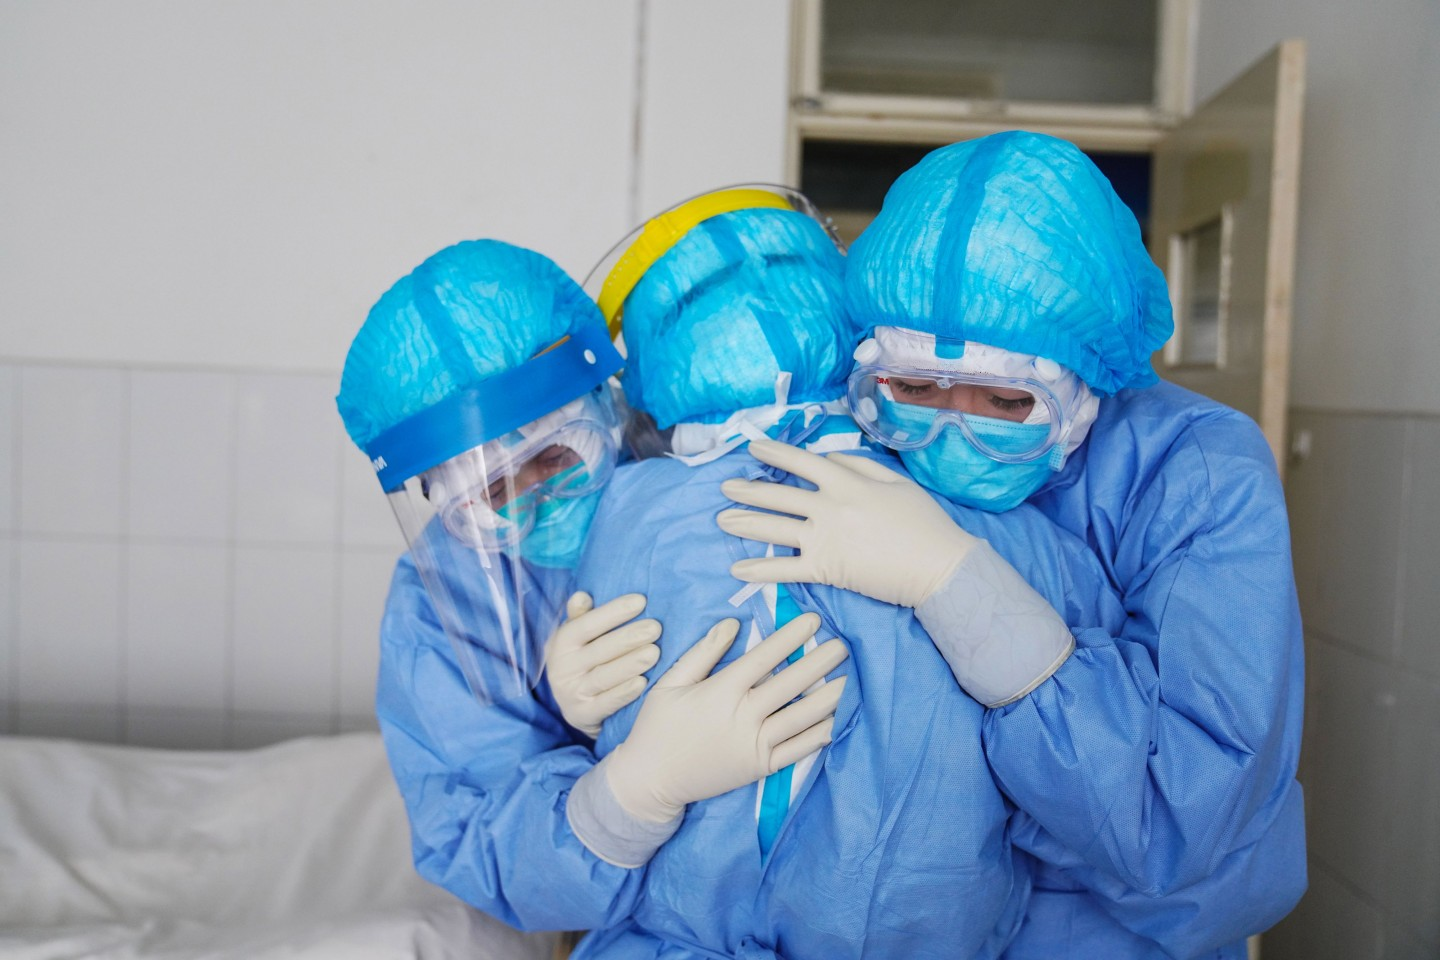 This file photo taken on 28 January 2020 shows medical staff members hugging each other in an isolation ward at a hospital in Zouping in China's easter Shandong province. (STR/AFP)